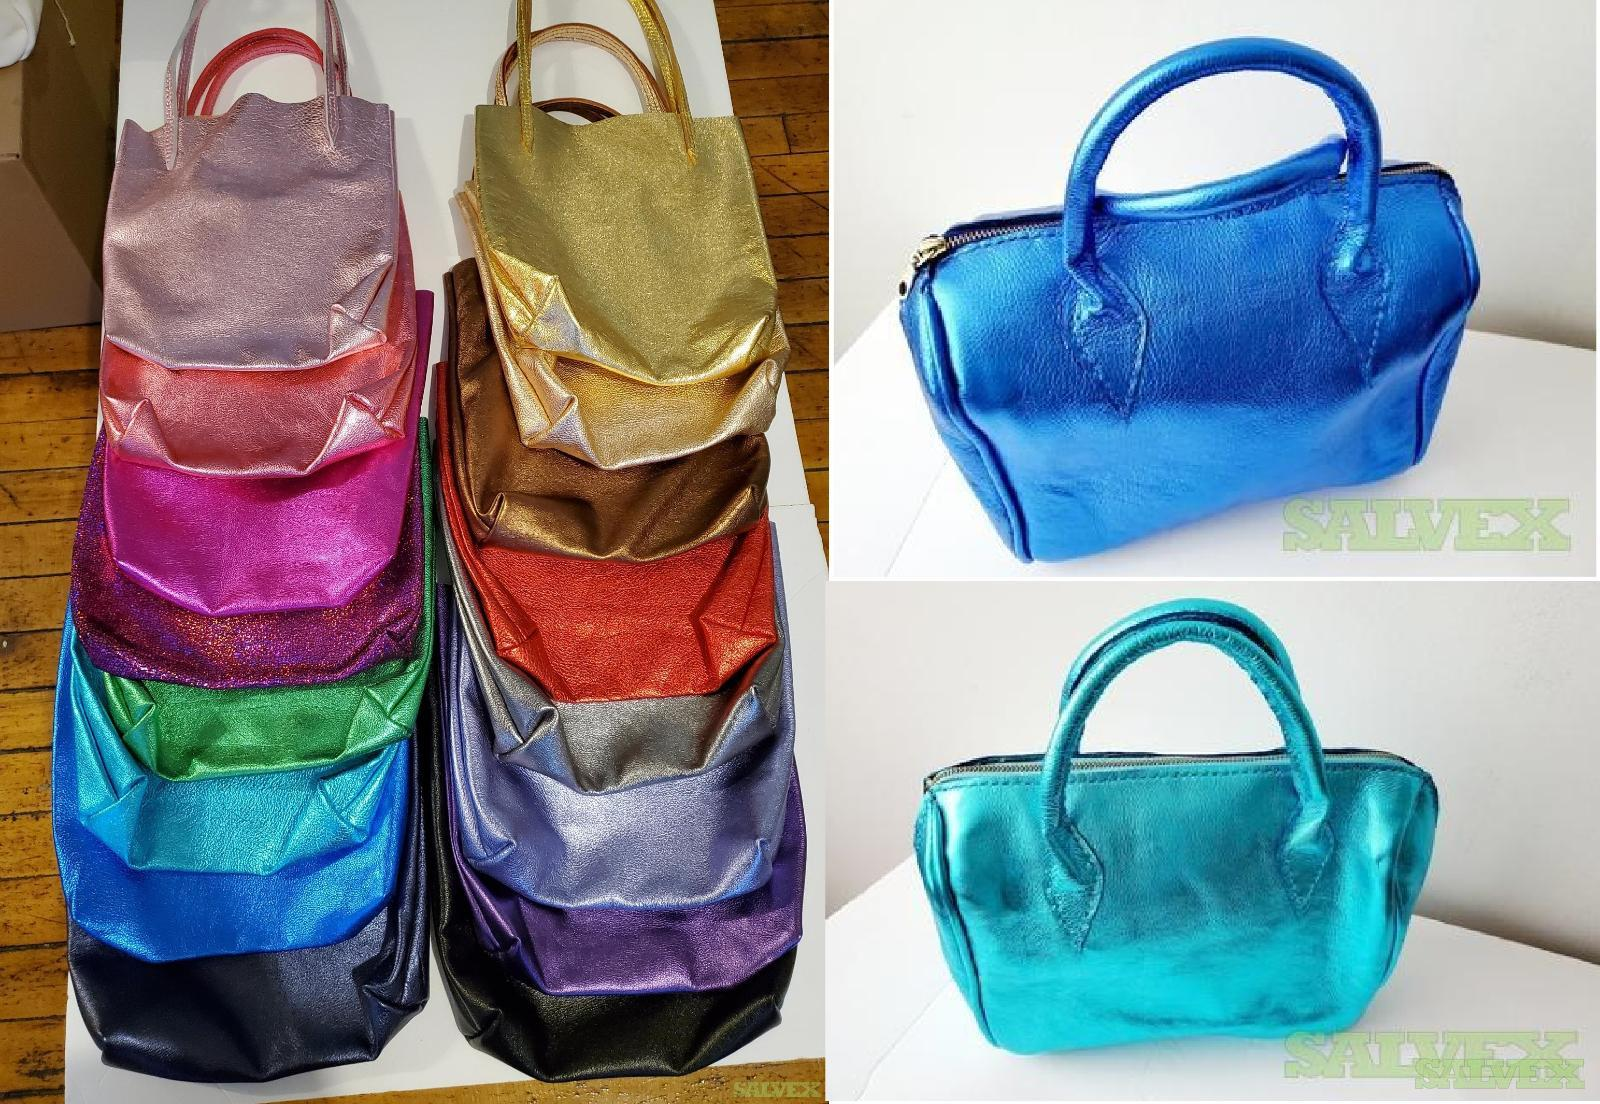 Handmade Metallic Leather Tote Bags and Boston Bags (32 Units) in Michigan